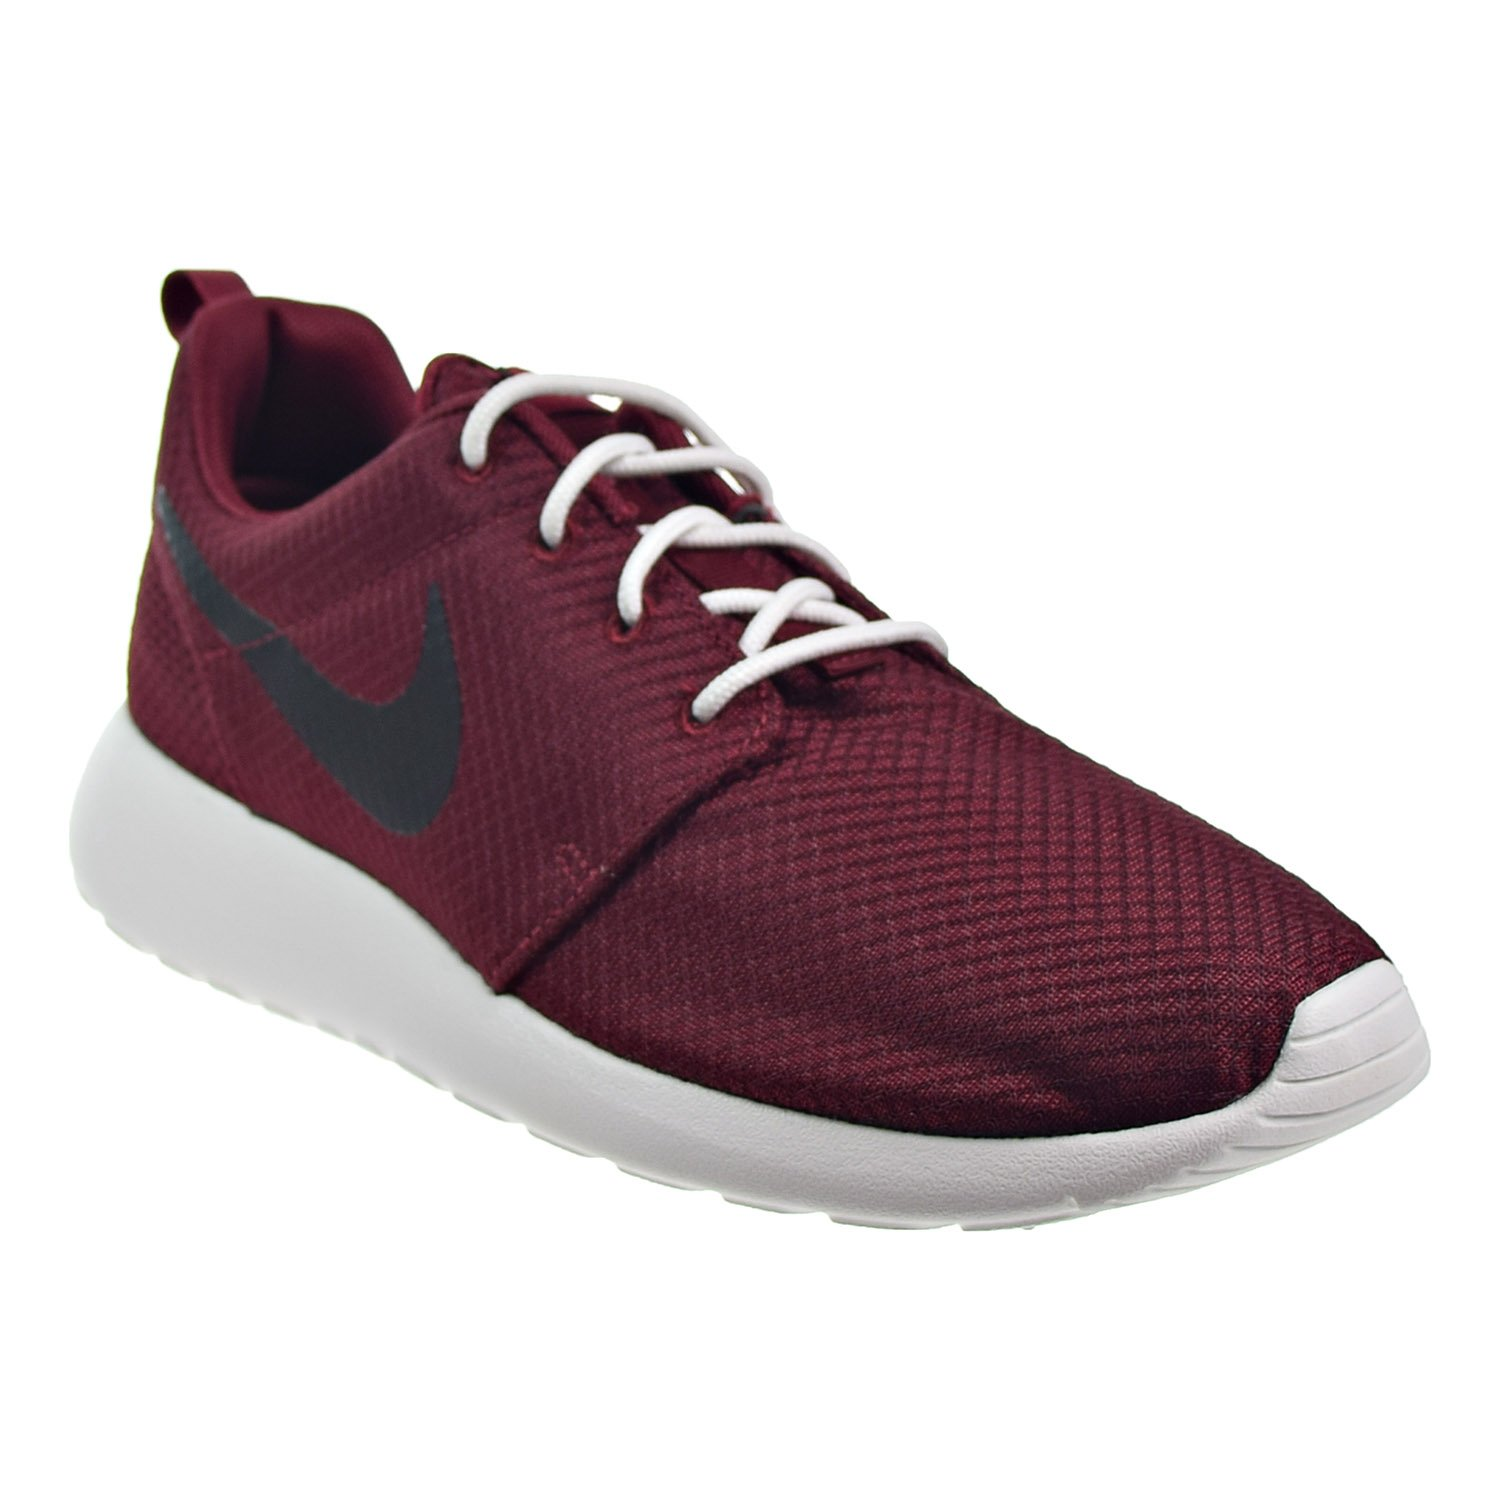 c60ae7eb3d84 Nike Roshe One Mens Shoes Team Red Black Summit White 511881-607 (9 B(M)  US)  Buy Online at Low Prices in India - Amazon.in